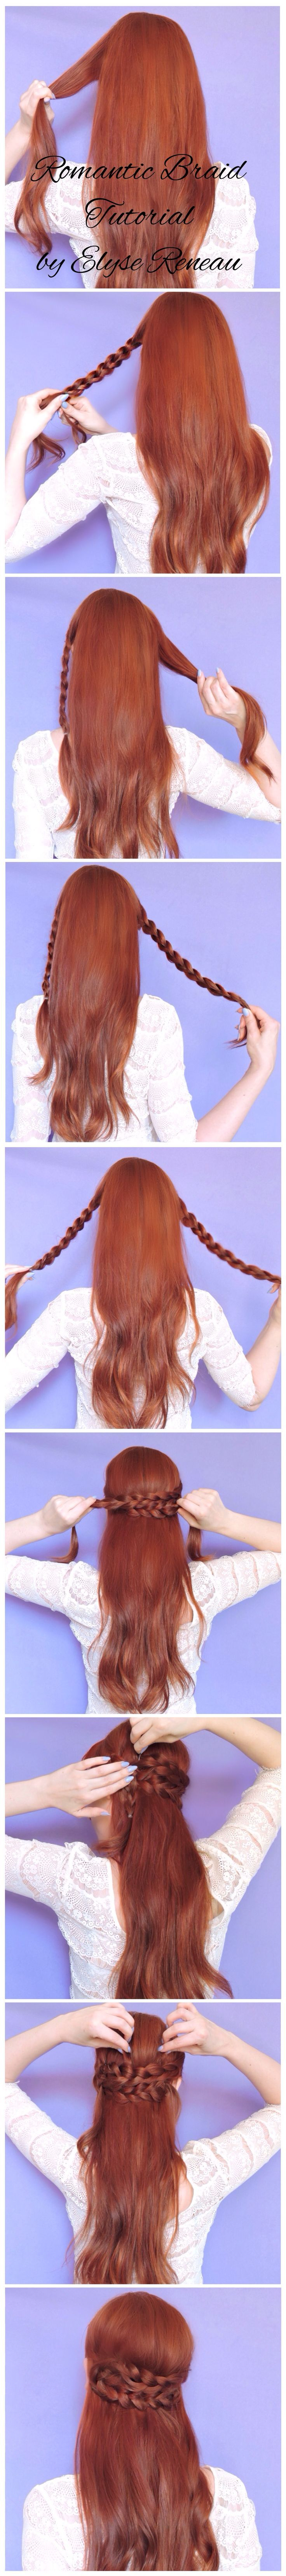 Cute and easy hairstyle tutorials so eassyy peinados